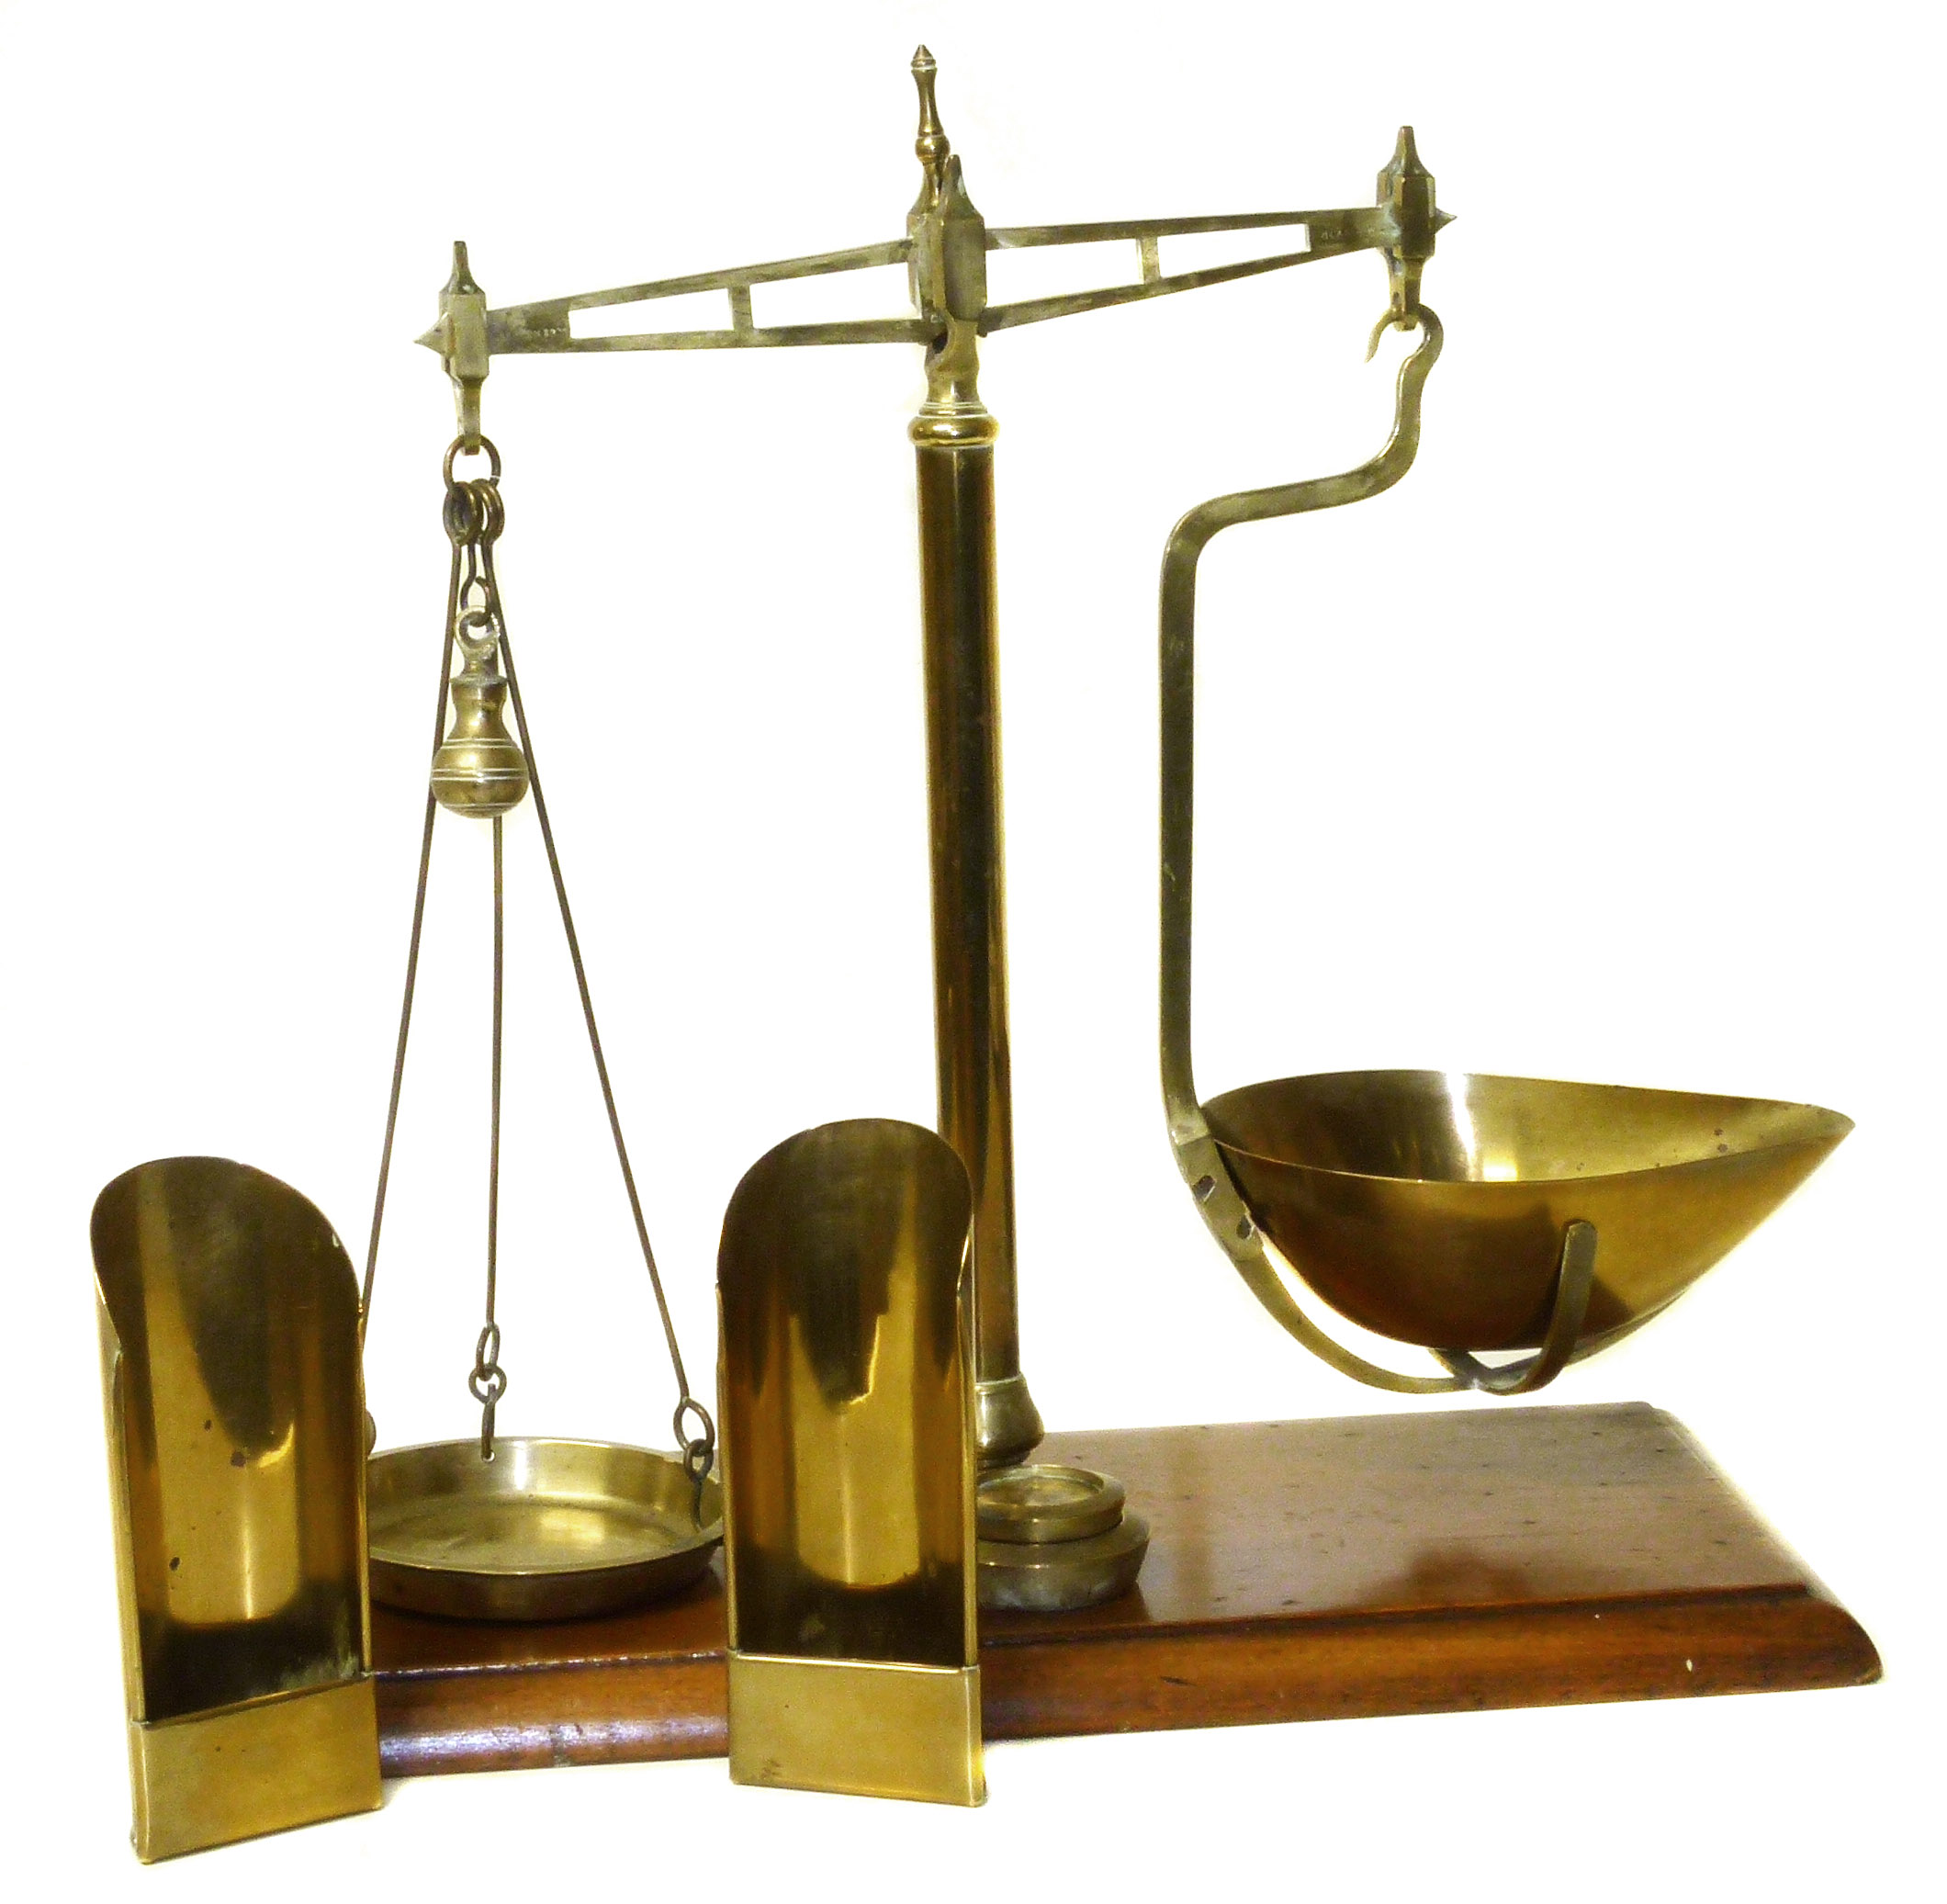 Lot 64 - Set brass balance scales by Henderson Brothers. Glasgow, two weights (8oz & 4ox) and two scoops